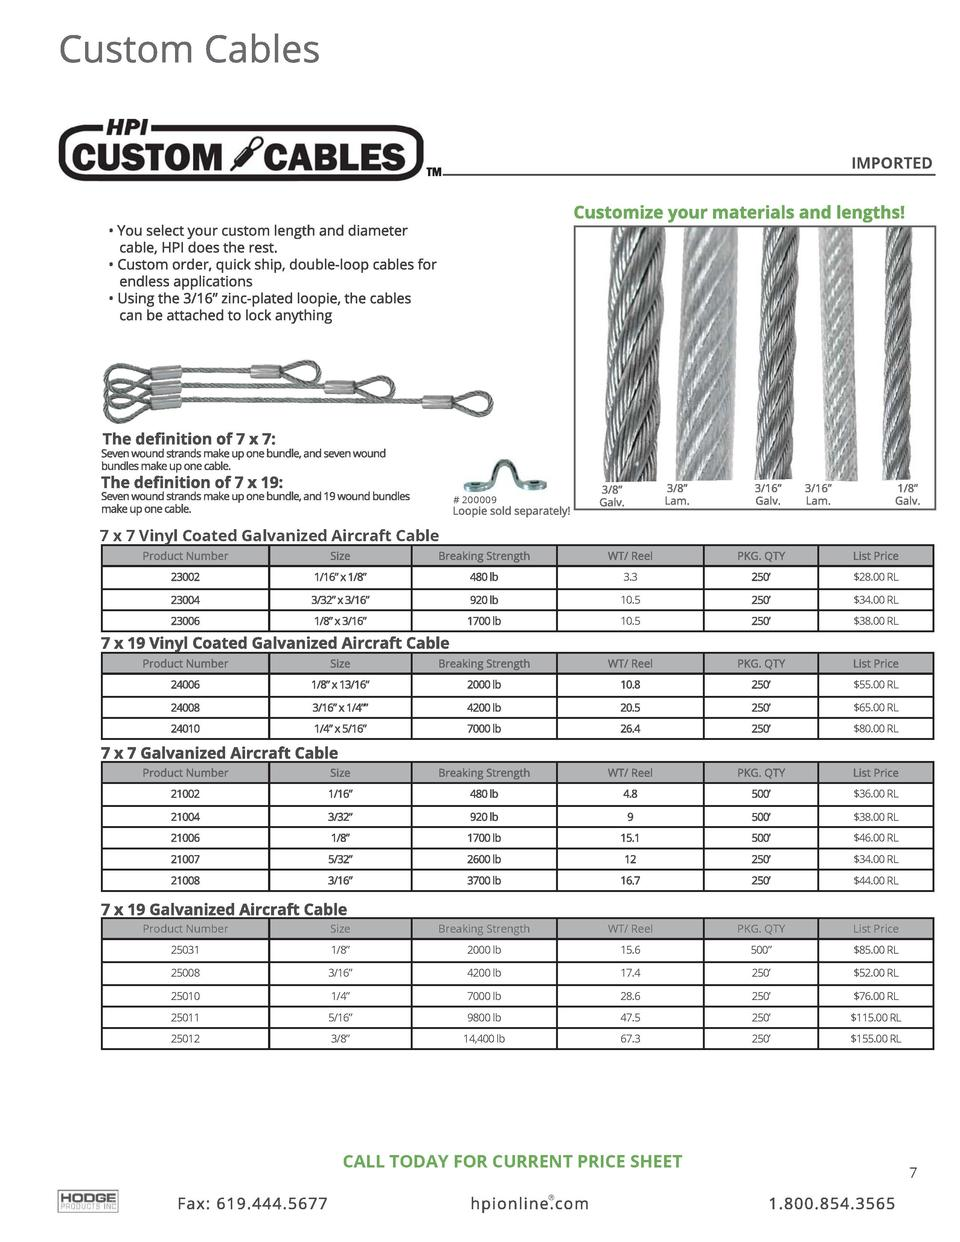 IMPORTED    200009  7 x 7 Vinyl Coated Galvanized Aircraft Cable Product Number  Size  Breaking Strength  WT  Reel  PKG. Q...